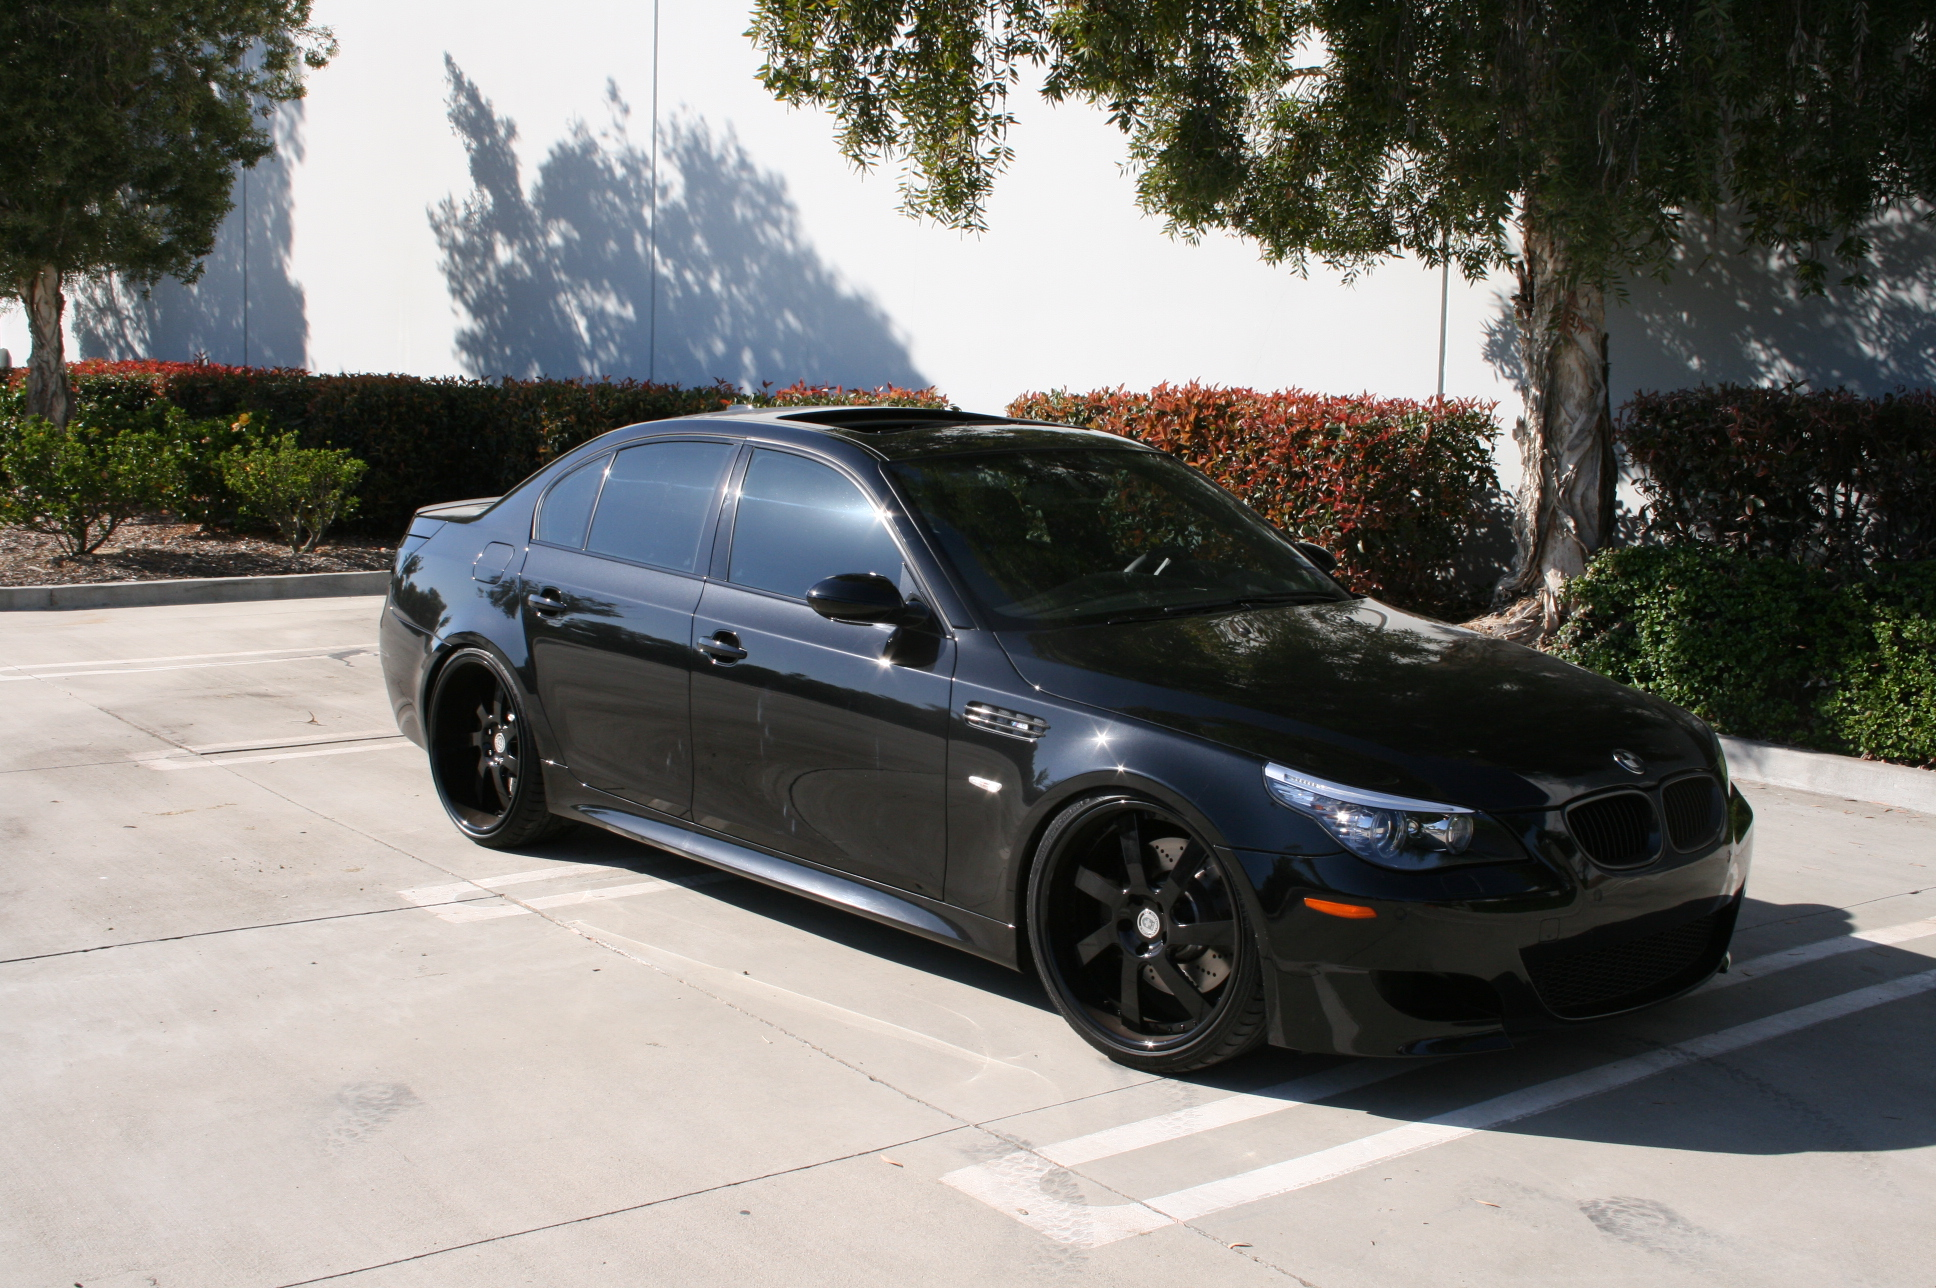 Pic likewise Pic additionally Maxresdefault together with Pic moreover Pic. on 2006 bmw 325i starter location